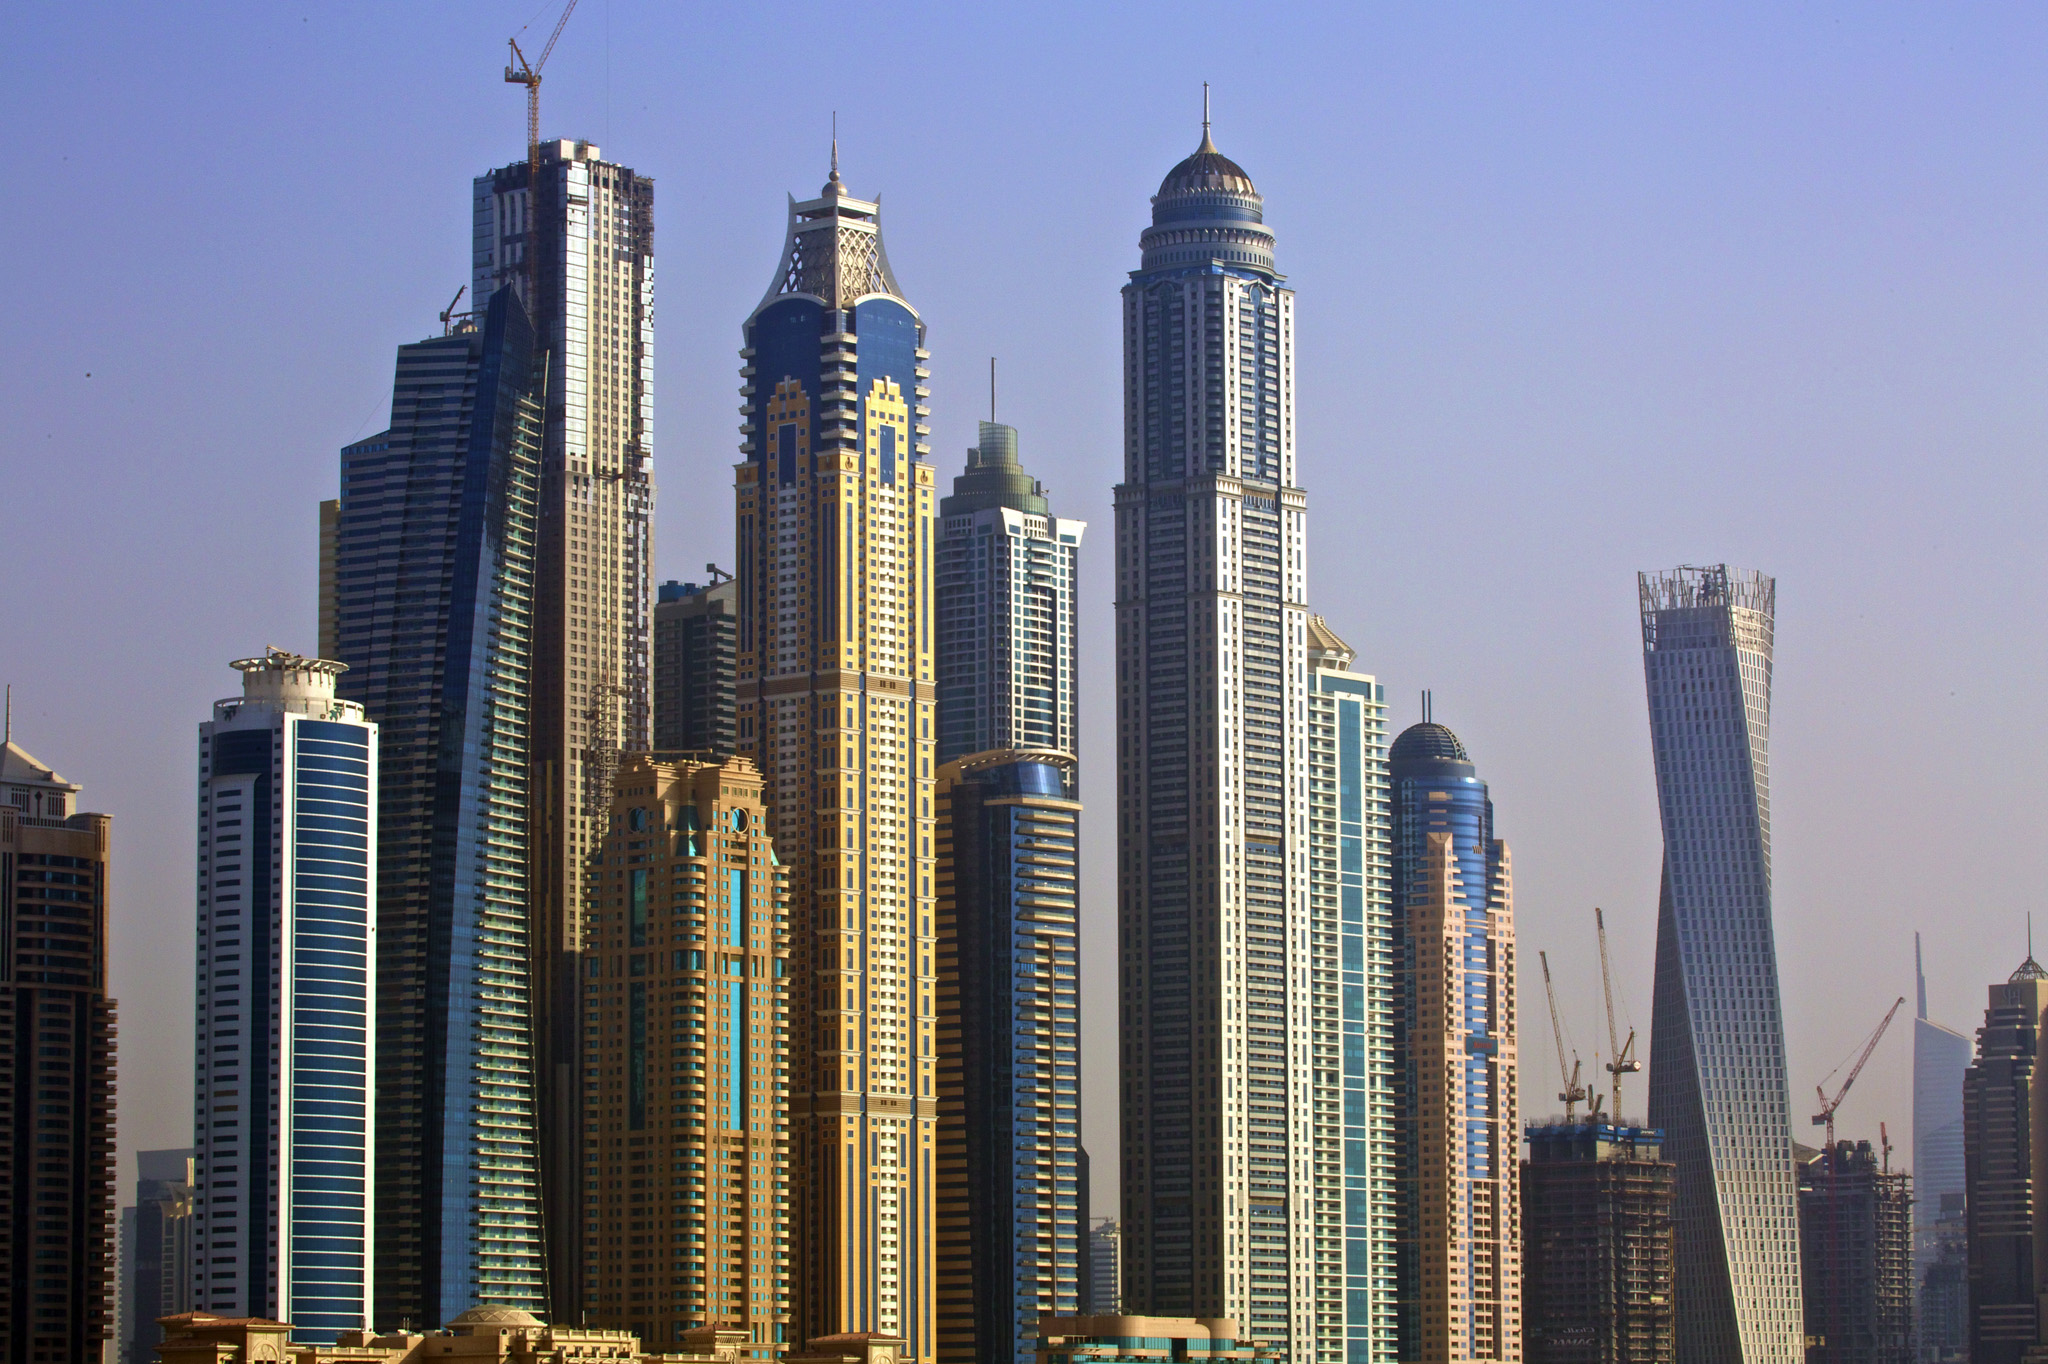 City skyscrapers stand on the waterfront on Palm Jumeirah artificial island in Dubai, United Arab Emirates.